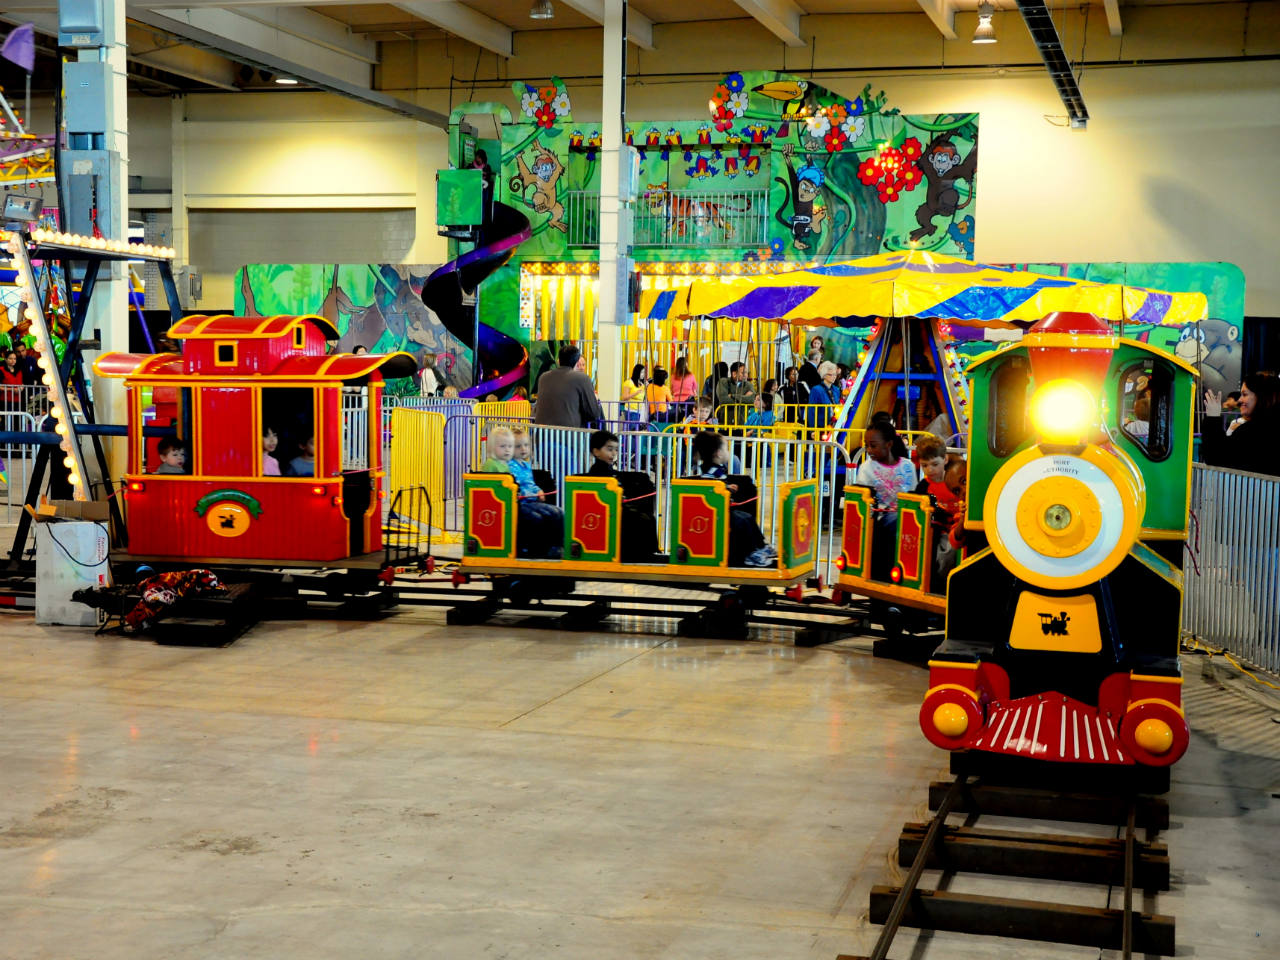 A train at an indoor amusement park